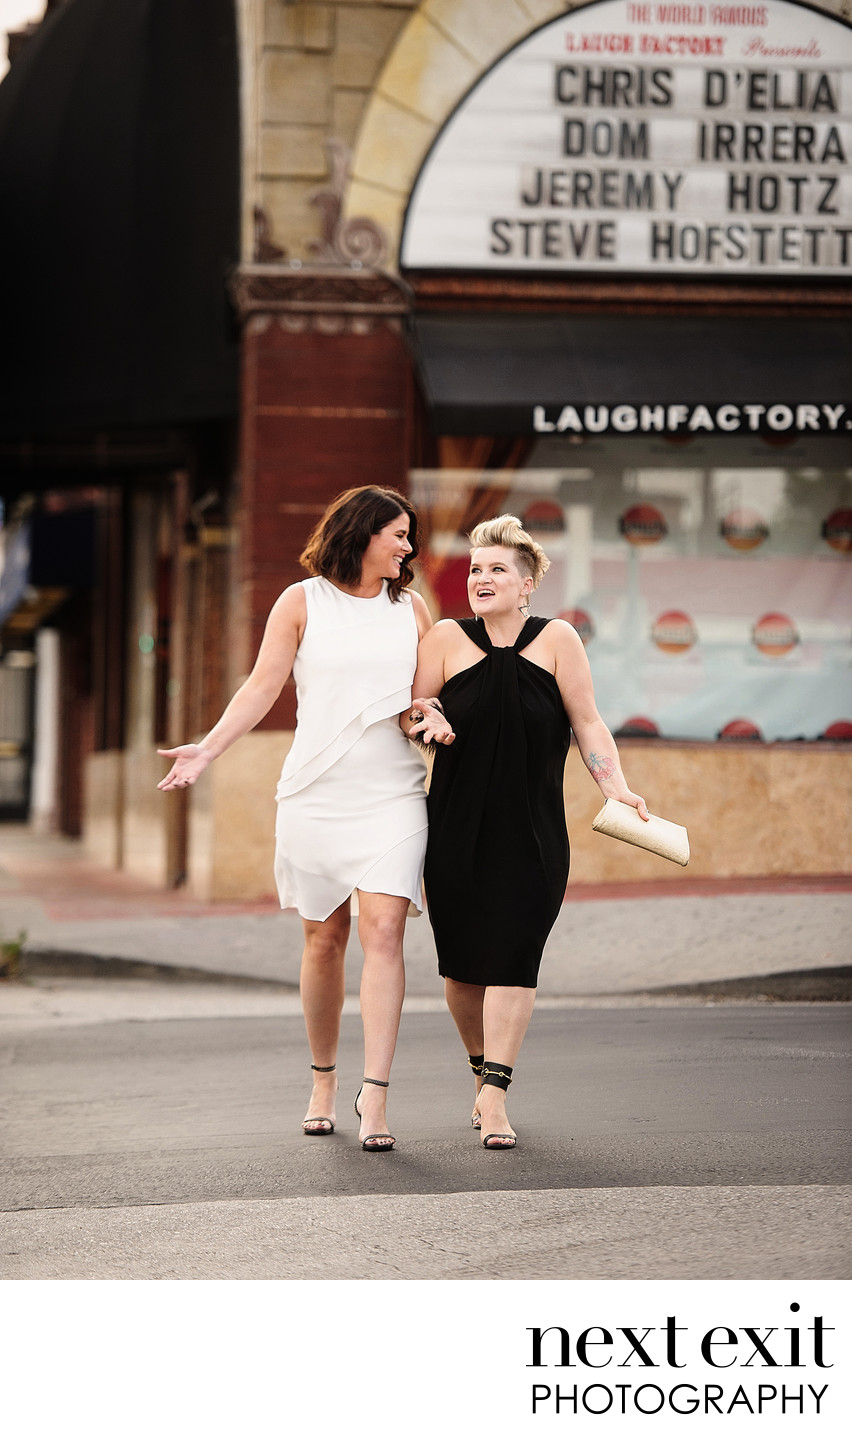 LGBTQ Wedding Photographer - Next Exit Photography